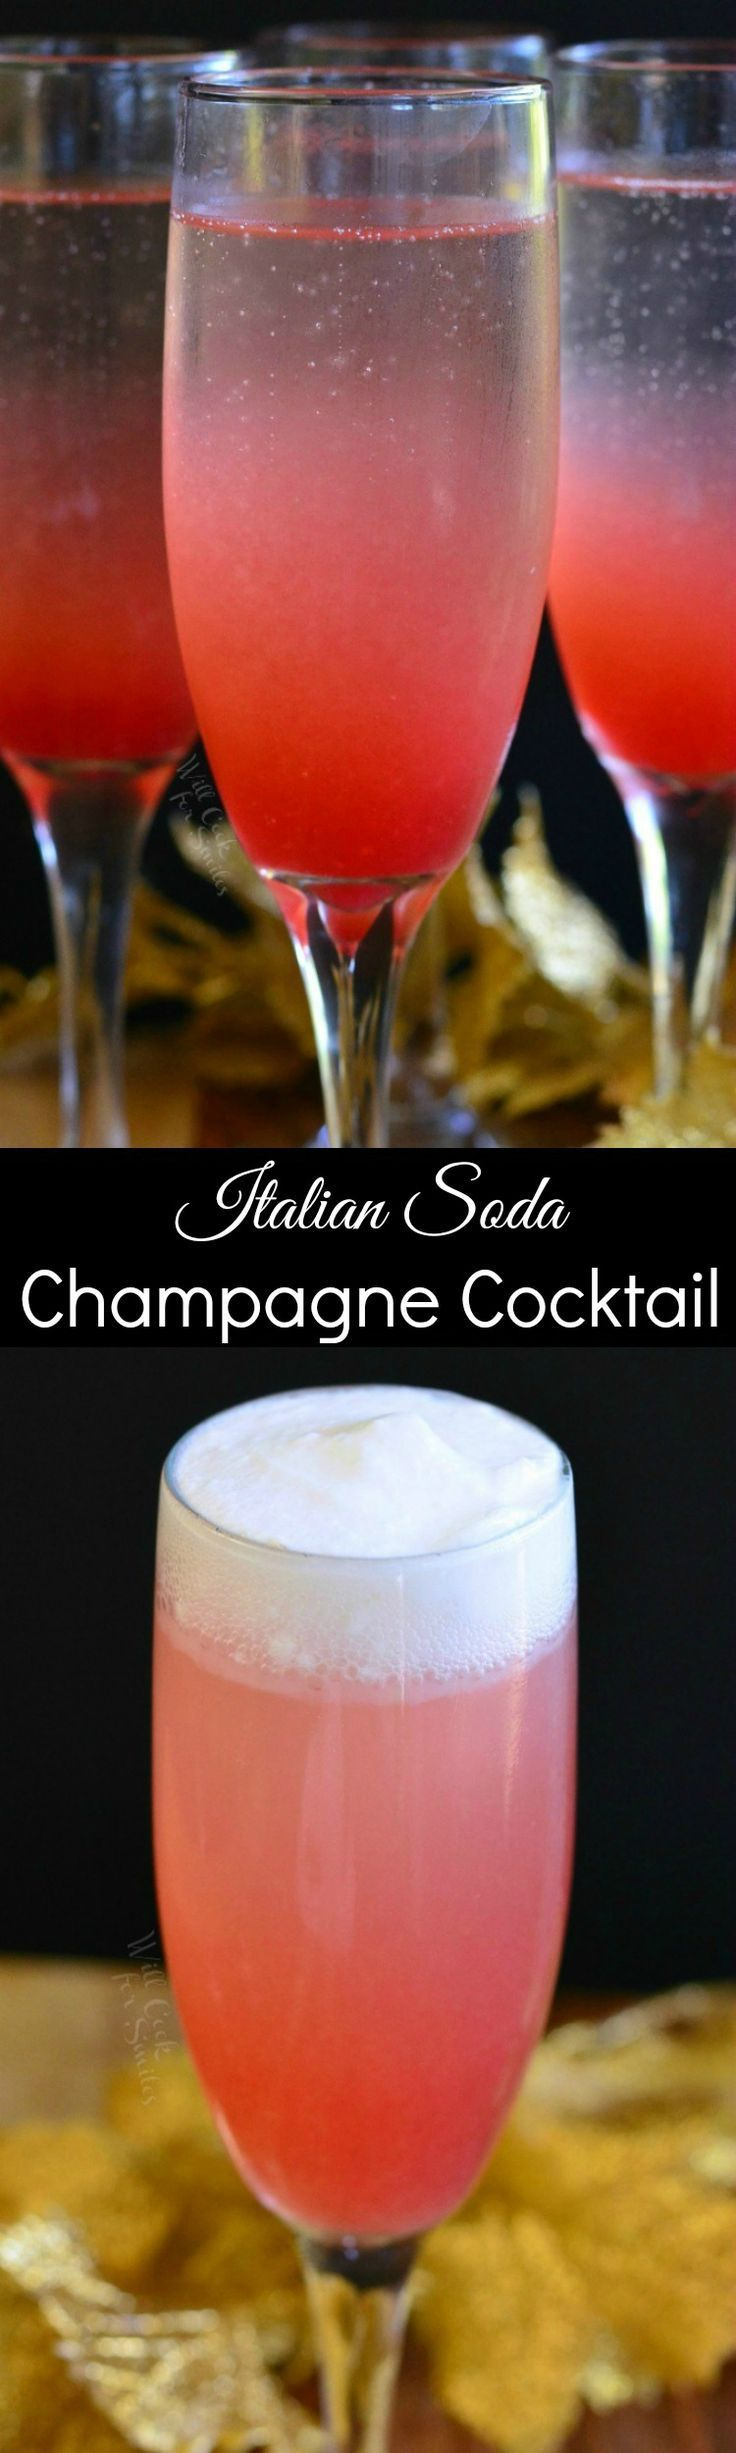 Raspberry Italian Soda Champagne Cocktail. This aromatic cocktail is made with homemade raspberry vanilla syrup, champagne and an option to make it creamy.